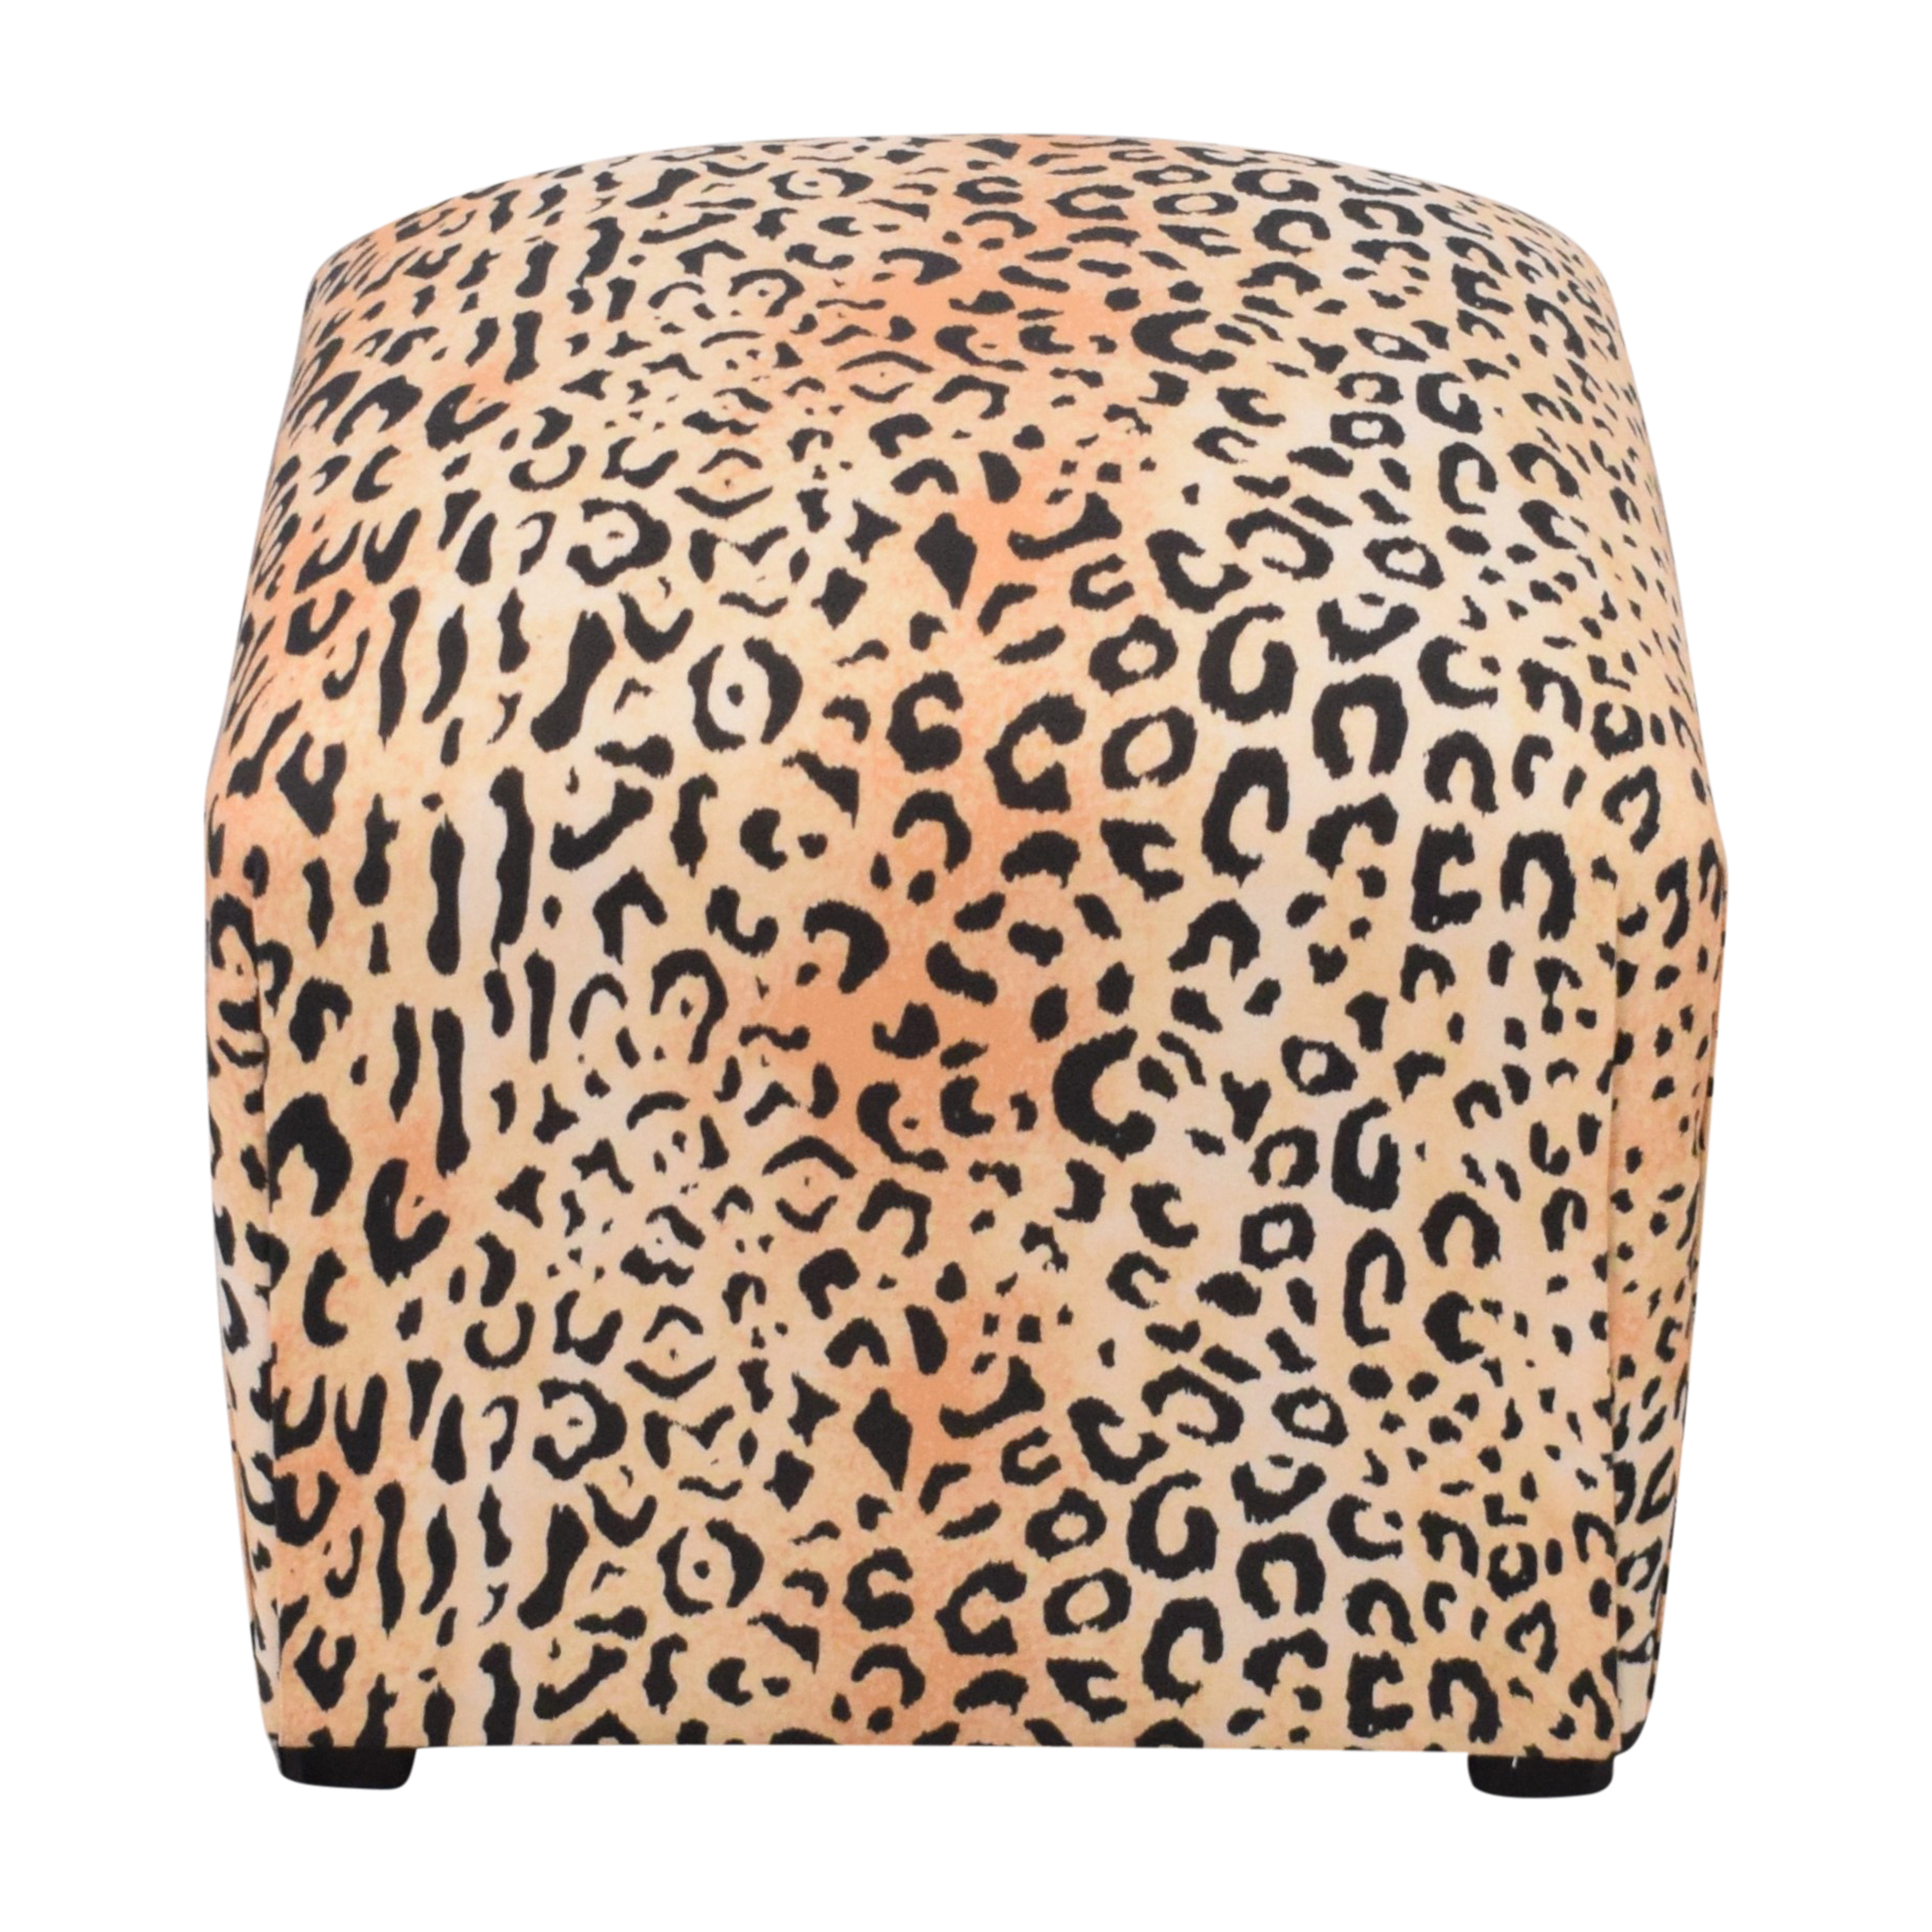 buy The Inside Deco Ottoman The Inside